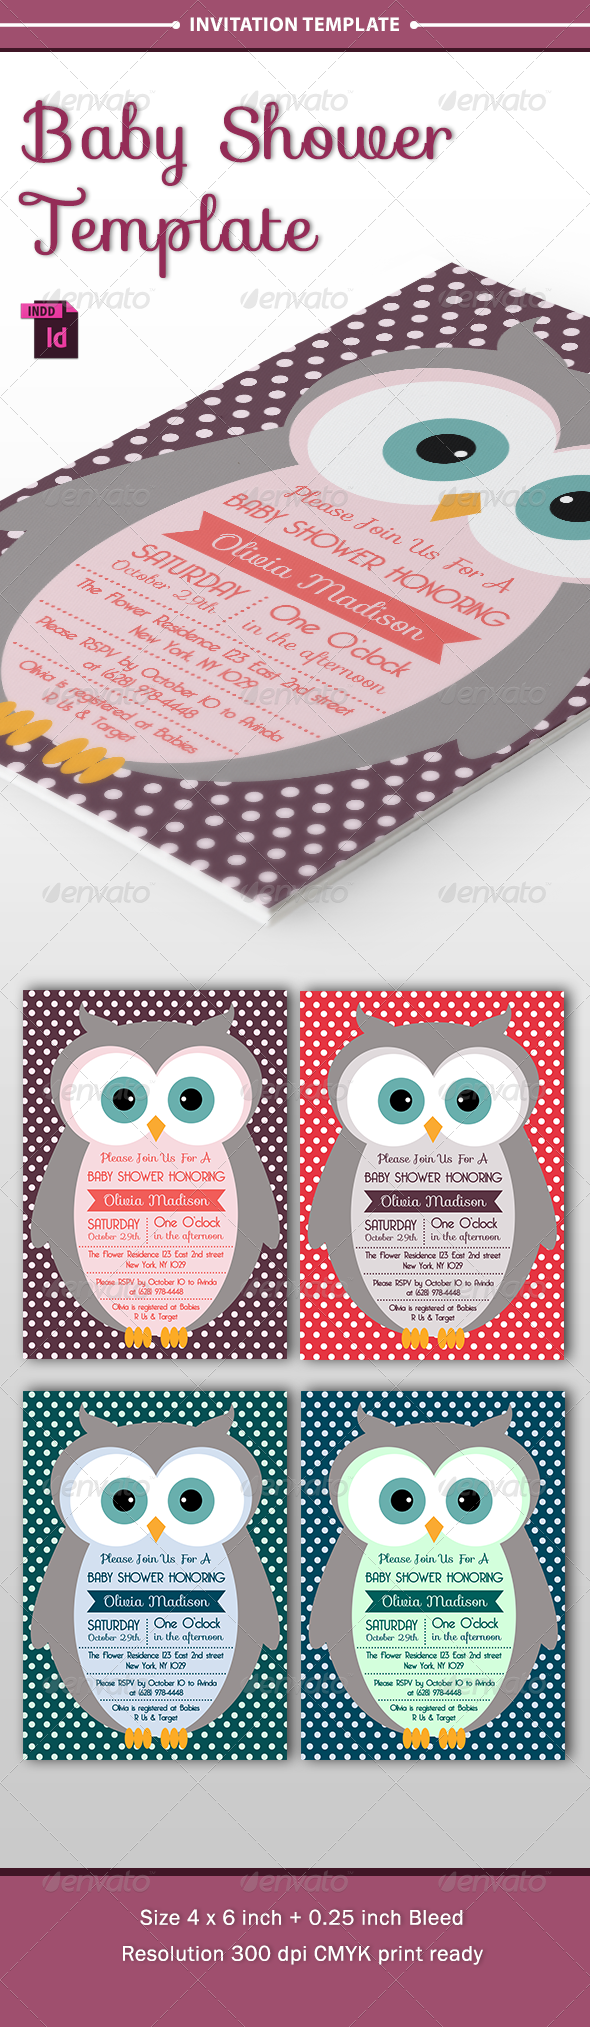 Baby Shower Template - Vol. 7 - Invitations Cards & Invites